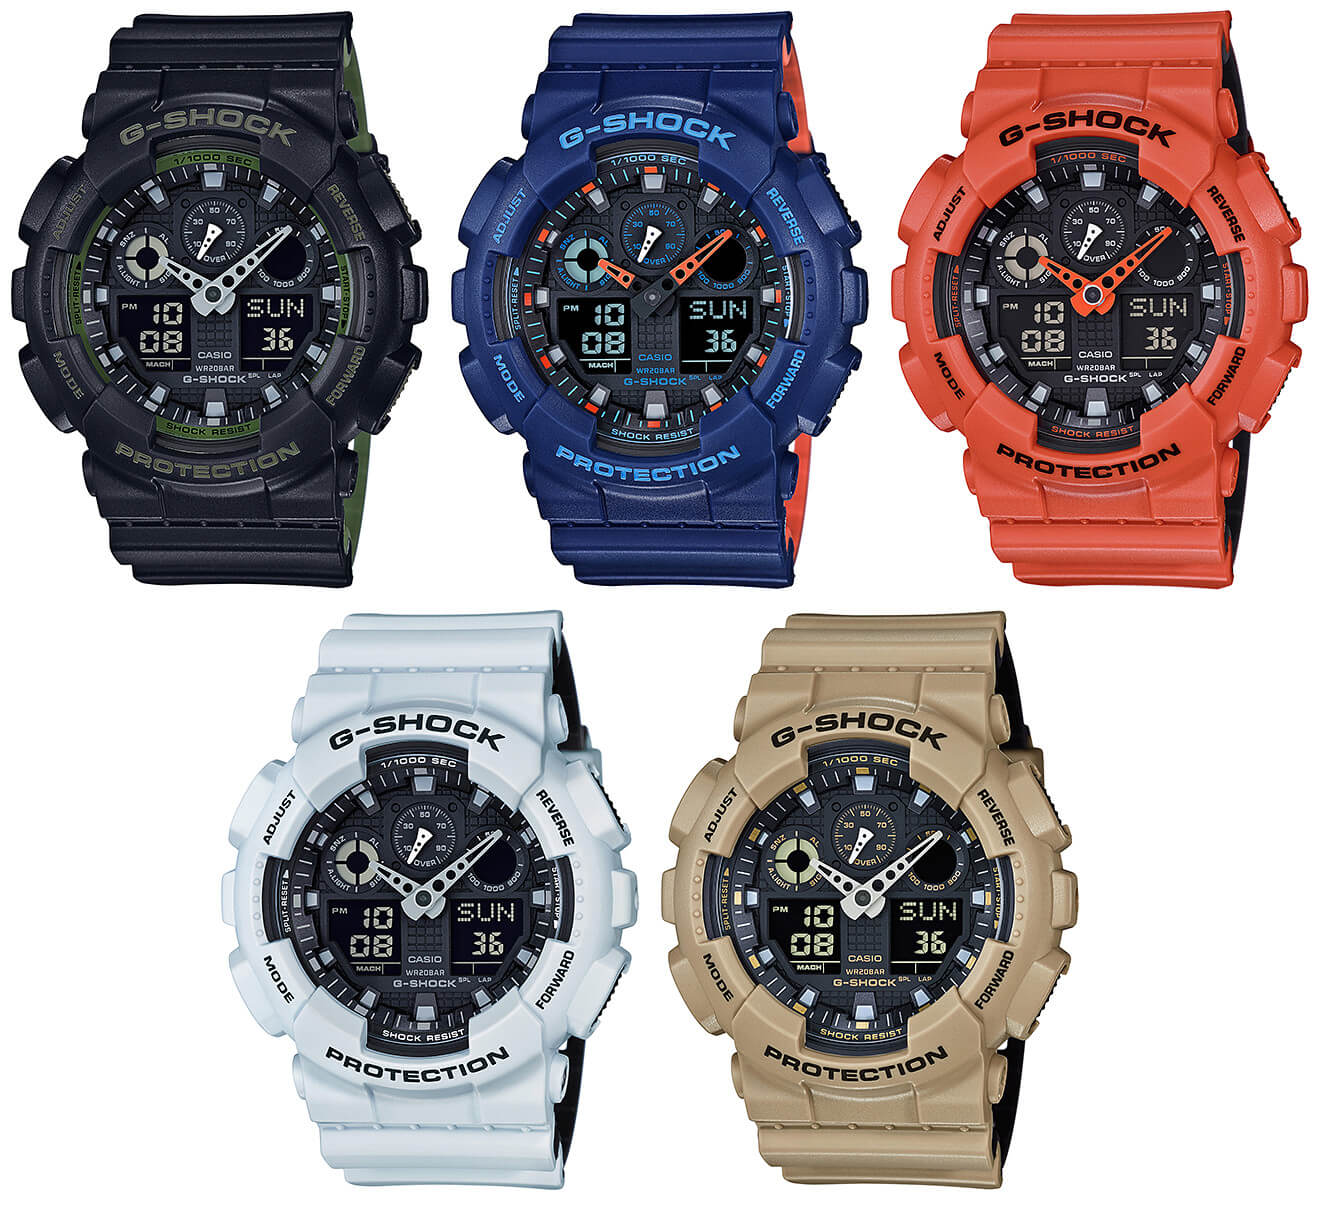 04a7b7b05e5 G-Shock GA-100L Layered Band Military Color Series – G-Central G ...